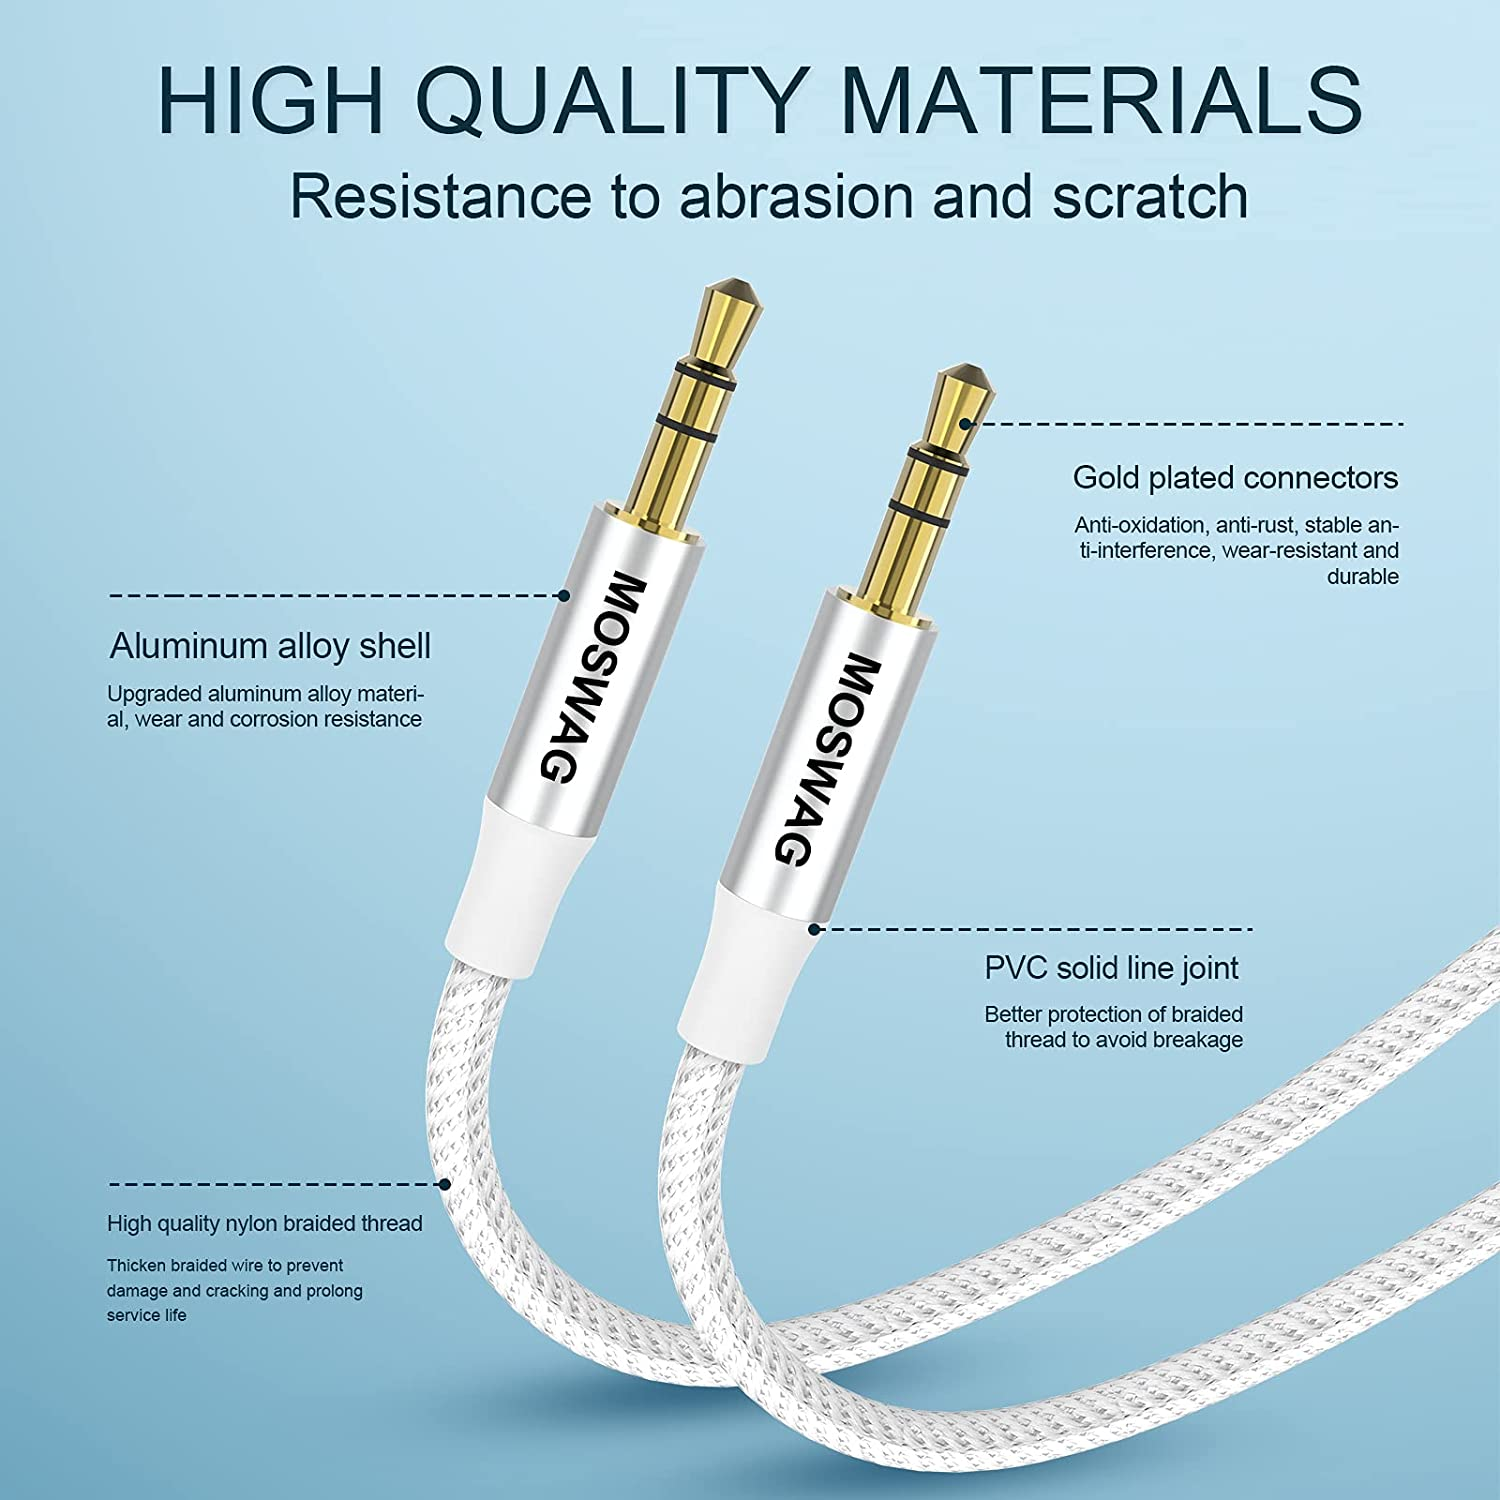 MOSWAG 1.64FT/0.5M 3.5mm Audio Aux Jack Cable to 3.5mm Aux Cable Male to Male Aux Cord Nylon Braided Stereo Jack Cord for Phones,Headphones,Speakers,Tablets,PCs,Music Players and More